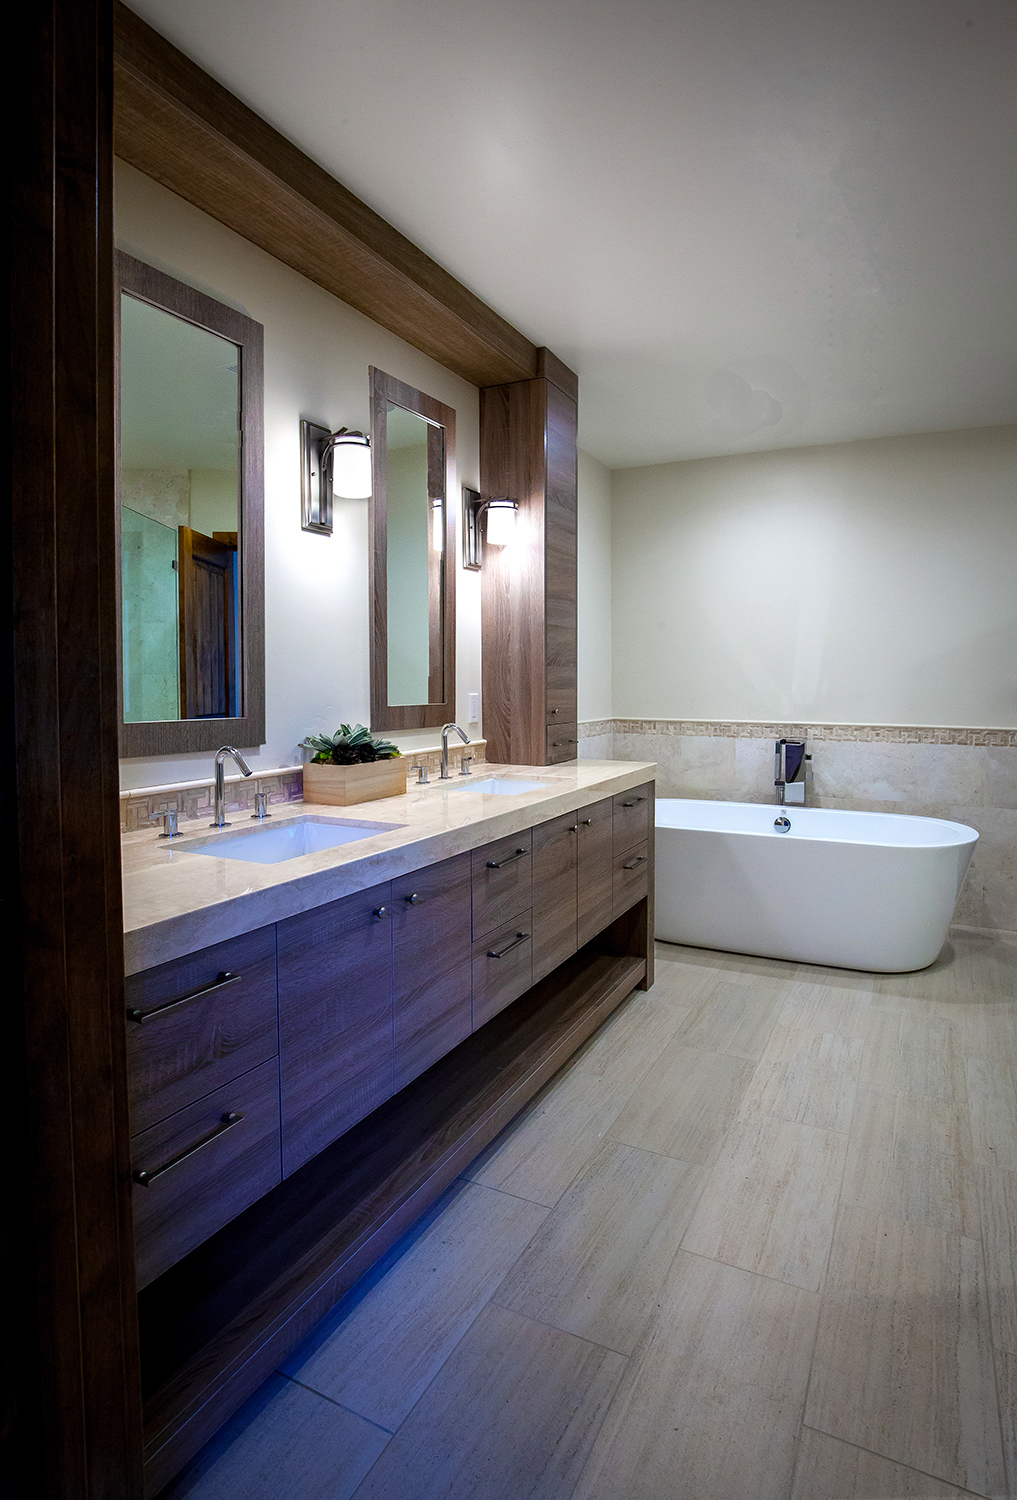 Deadwood Construction Inc.   We design thoughtful and livable spaces.    View Our Work